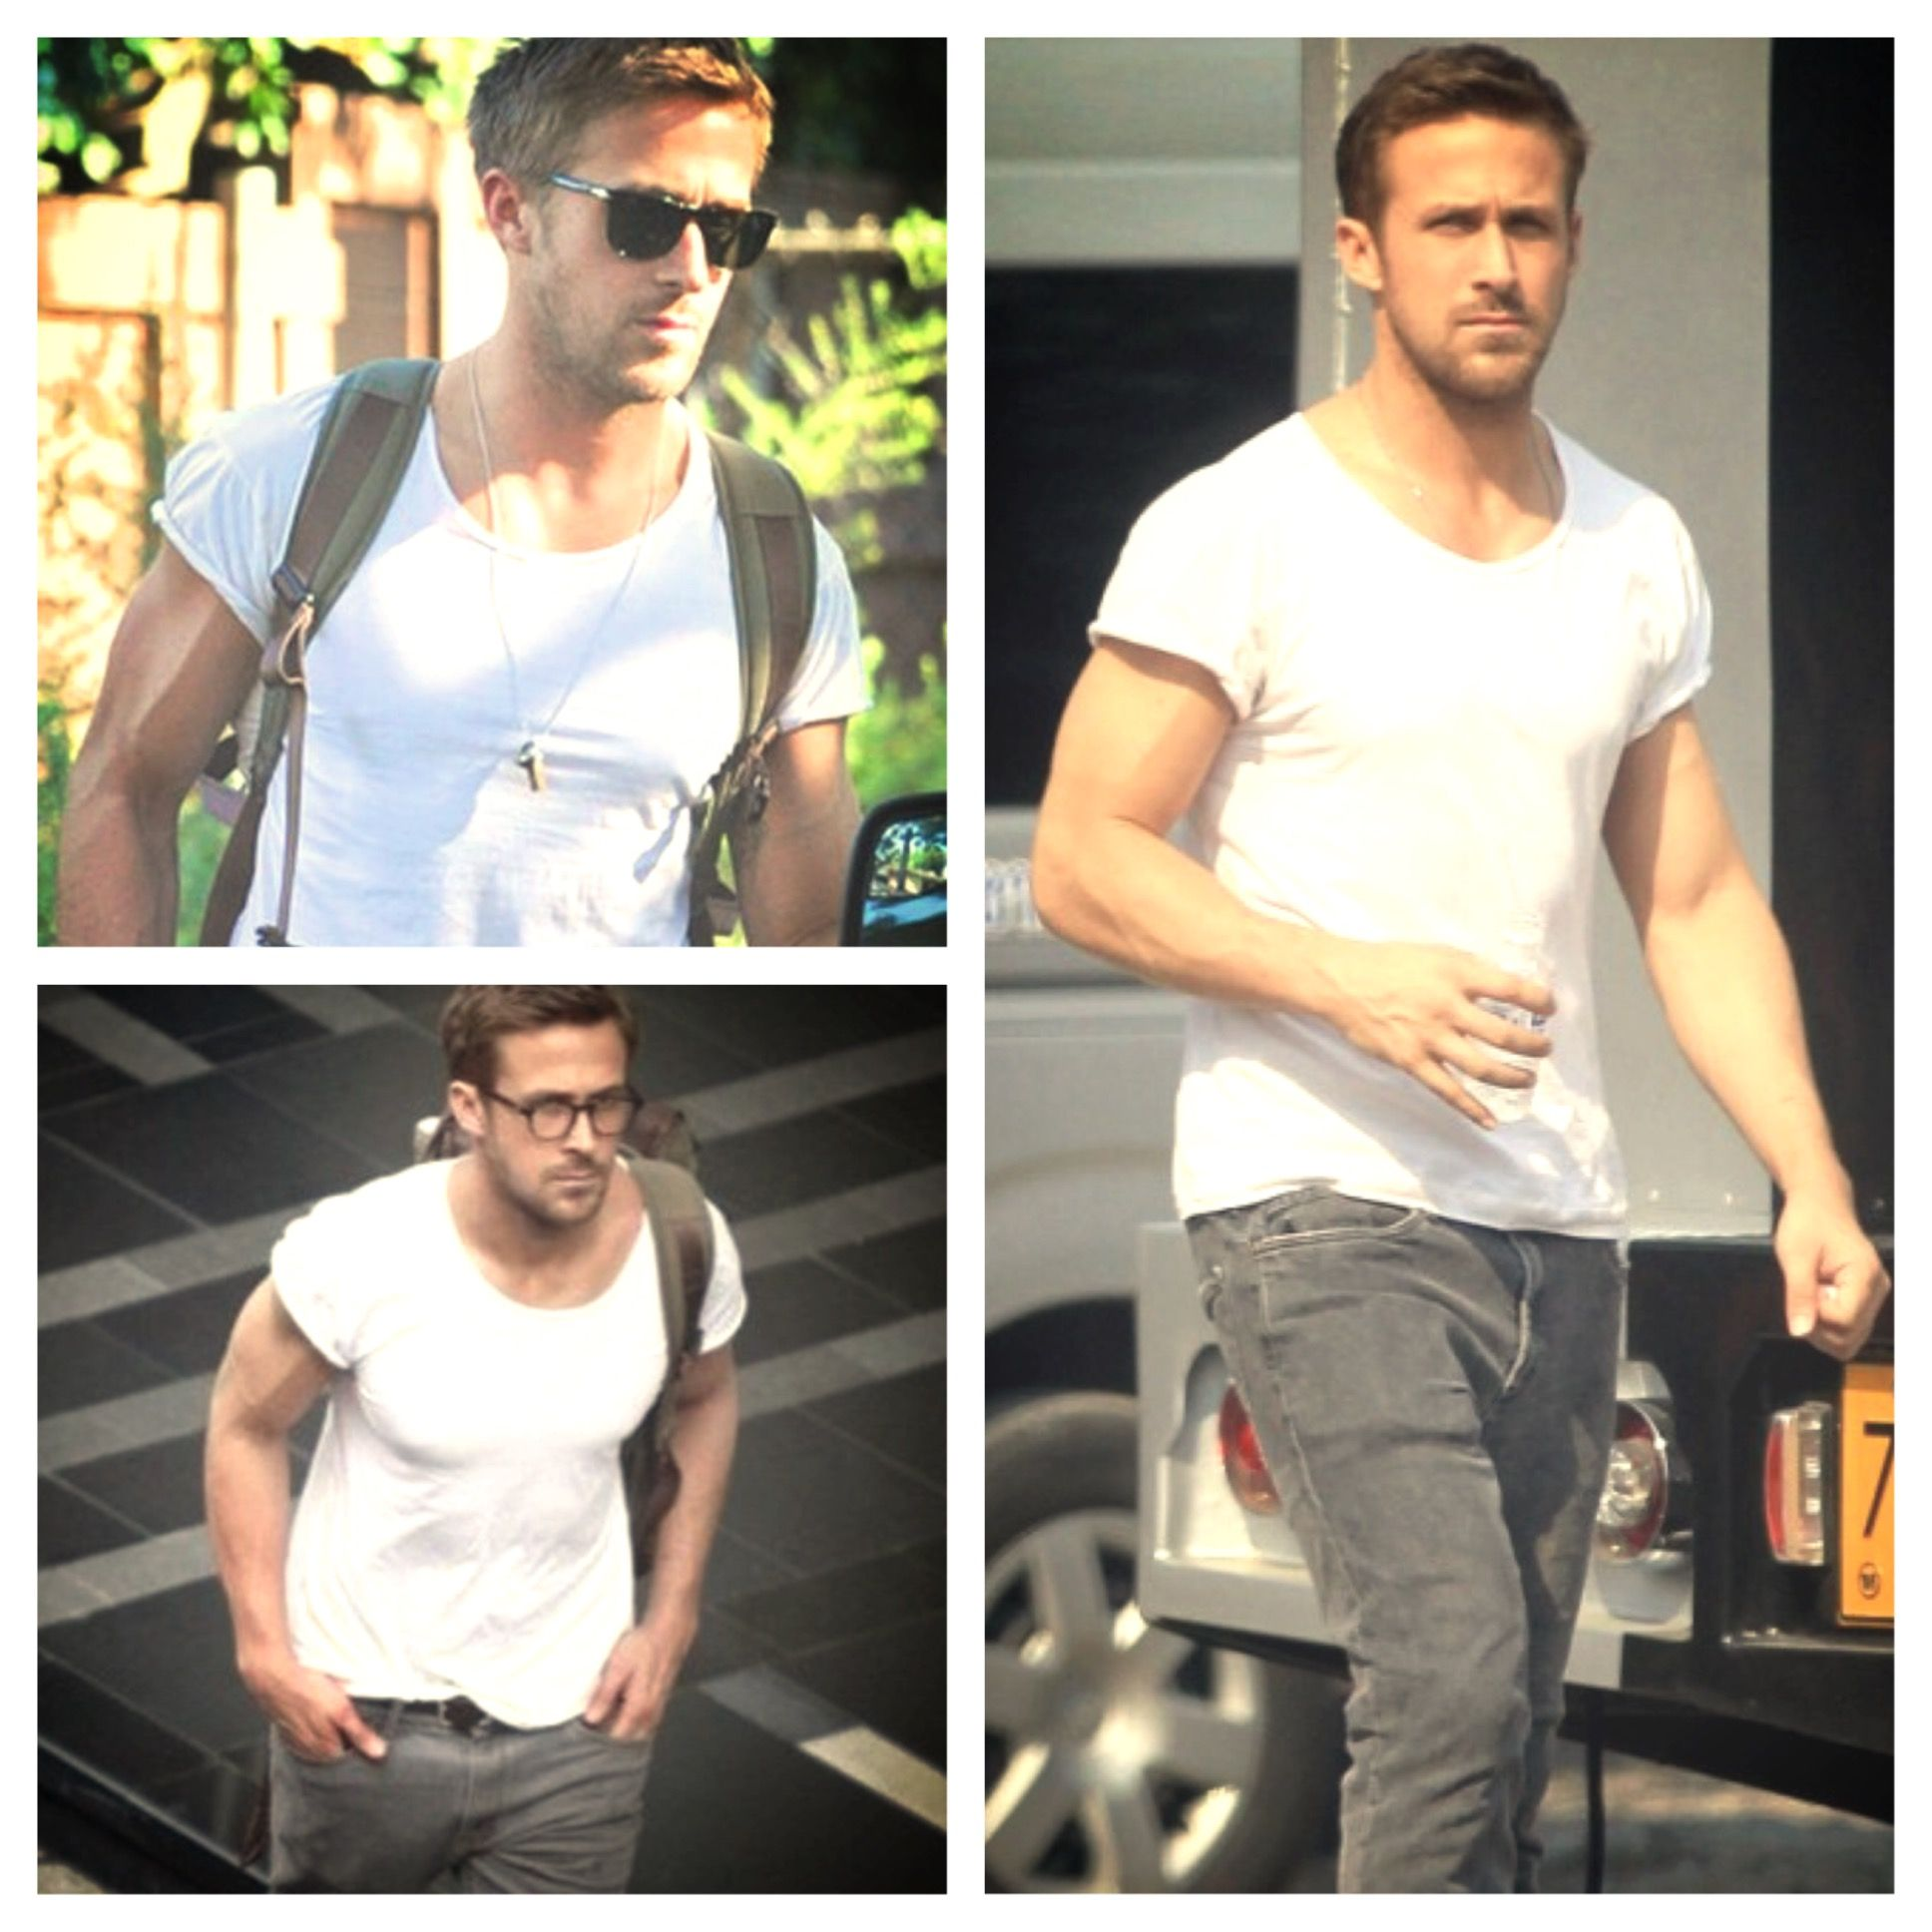 Ryan Gosling Arms White Tee - Arms Workout - The Secrete To Toner, Bigger, or Sexier Arms is all about balls. People spend too much time with dumbbells and curl bars when they should be spending a lot more time with a pair of balls.